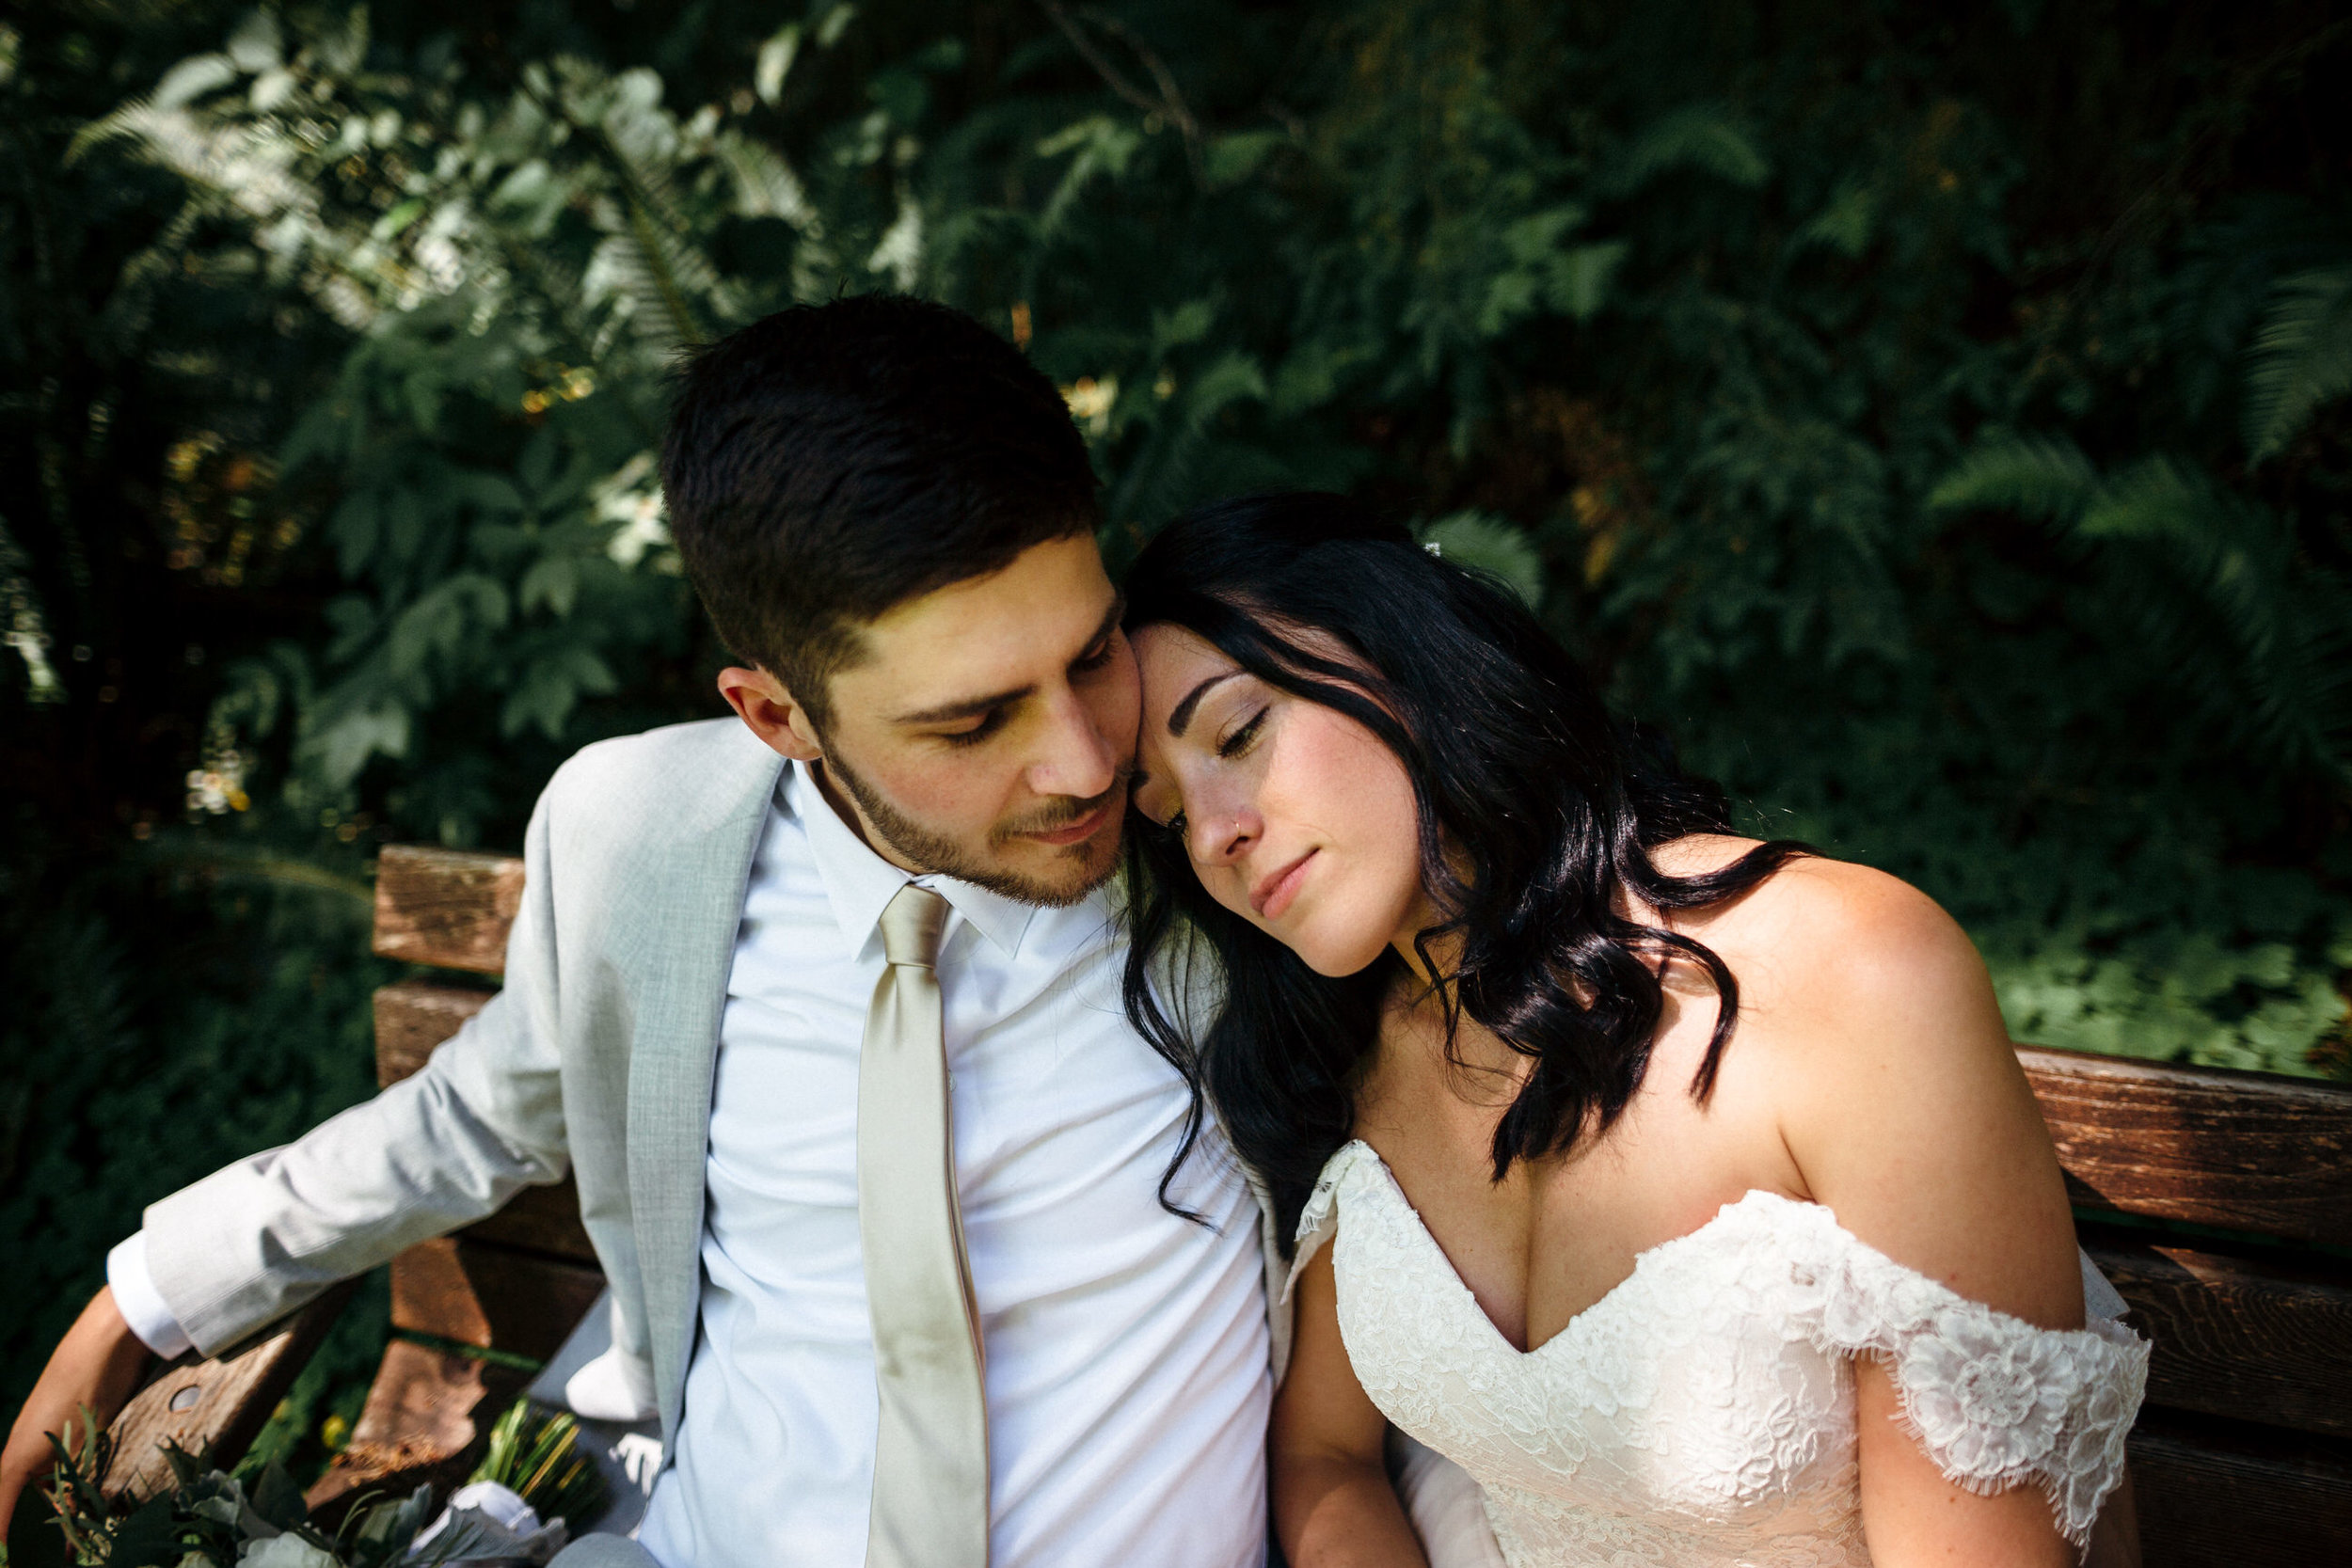 Mt hood wedding 2.jpg